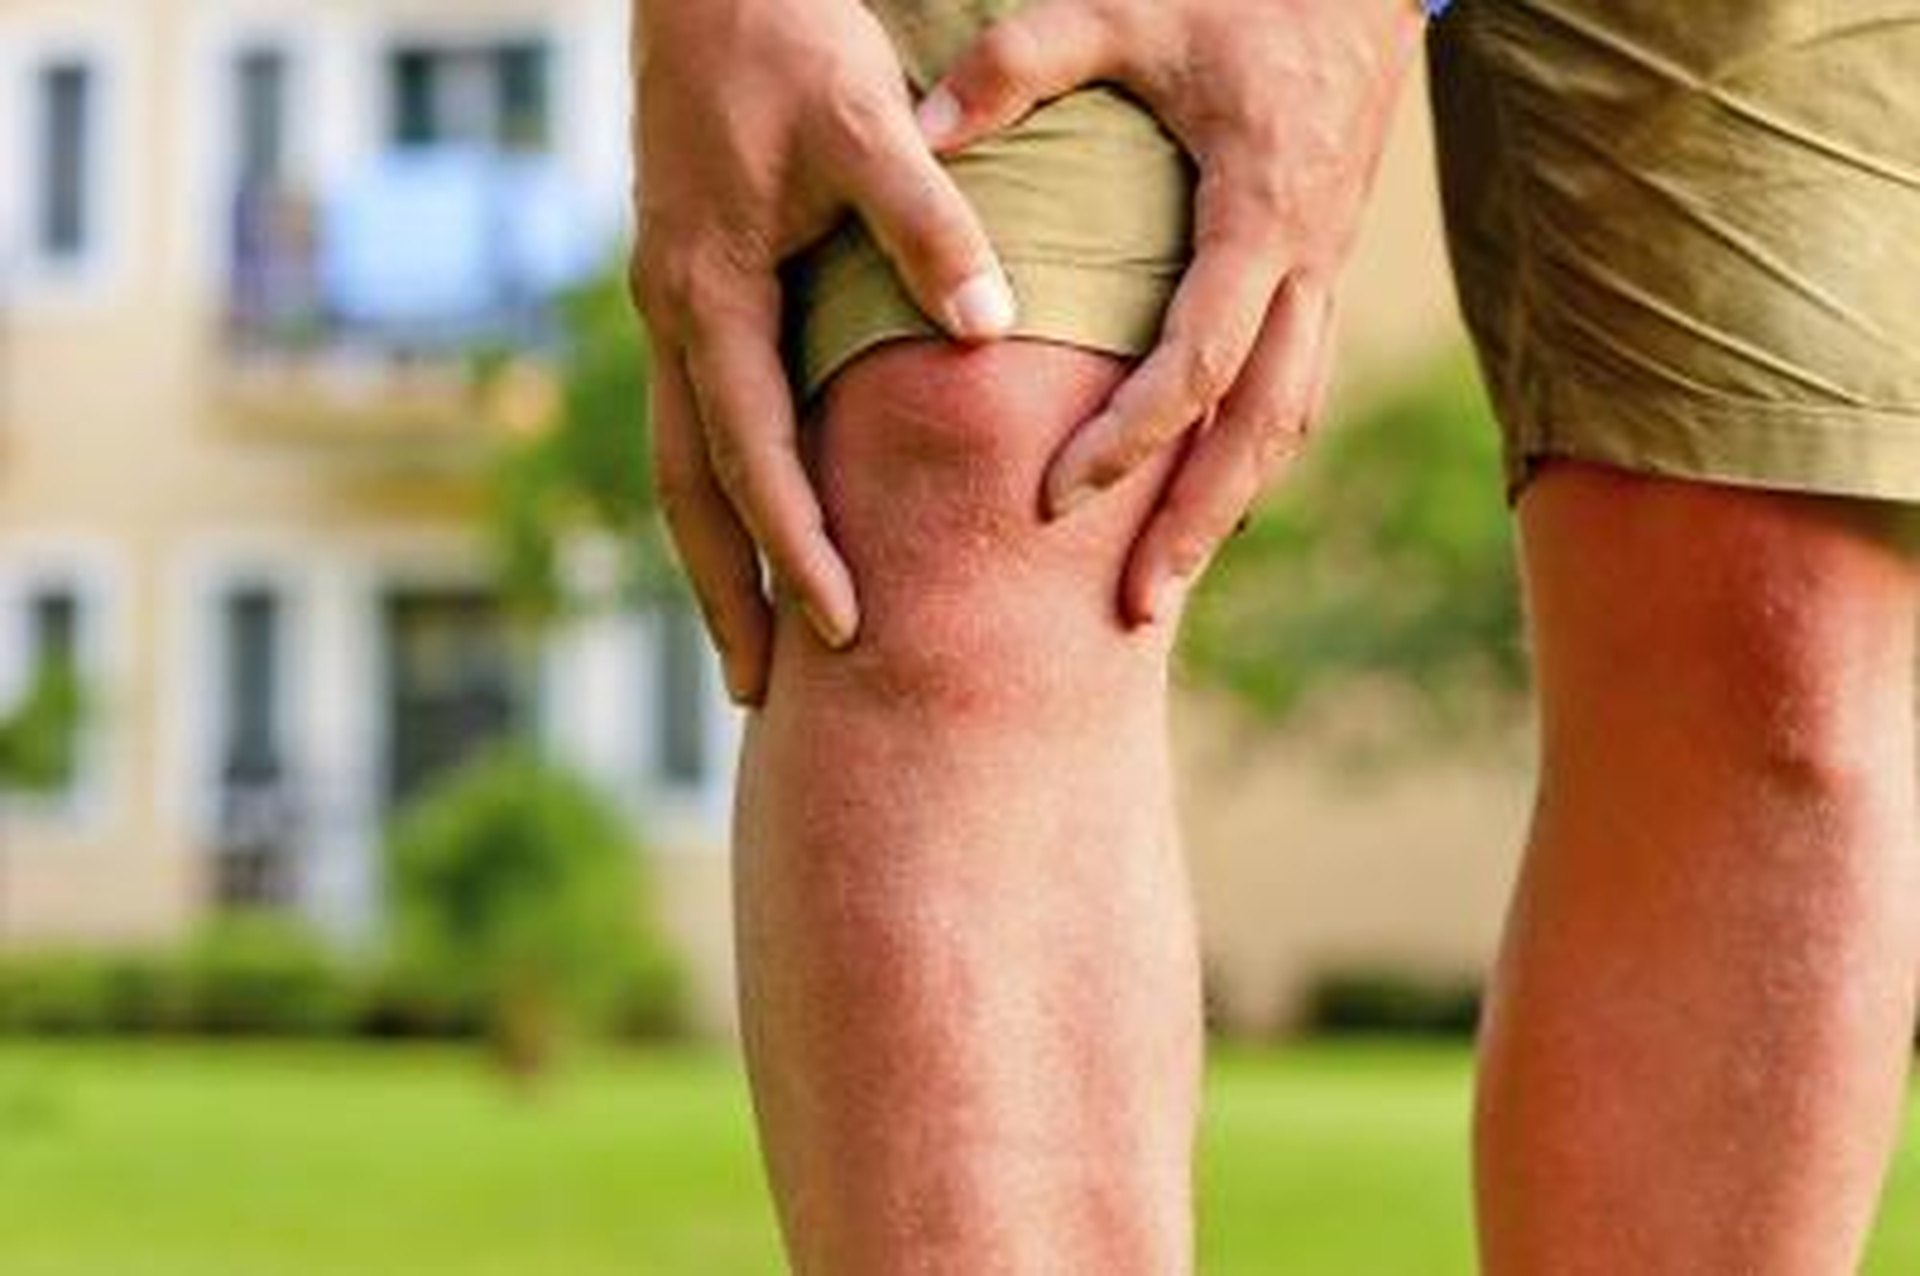 How to strengthen the joints and ligaments: tools and exercises 63